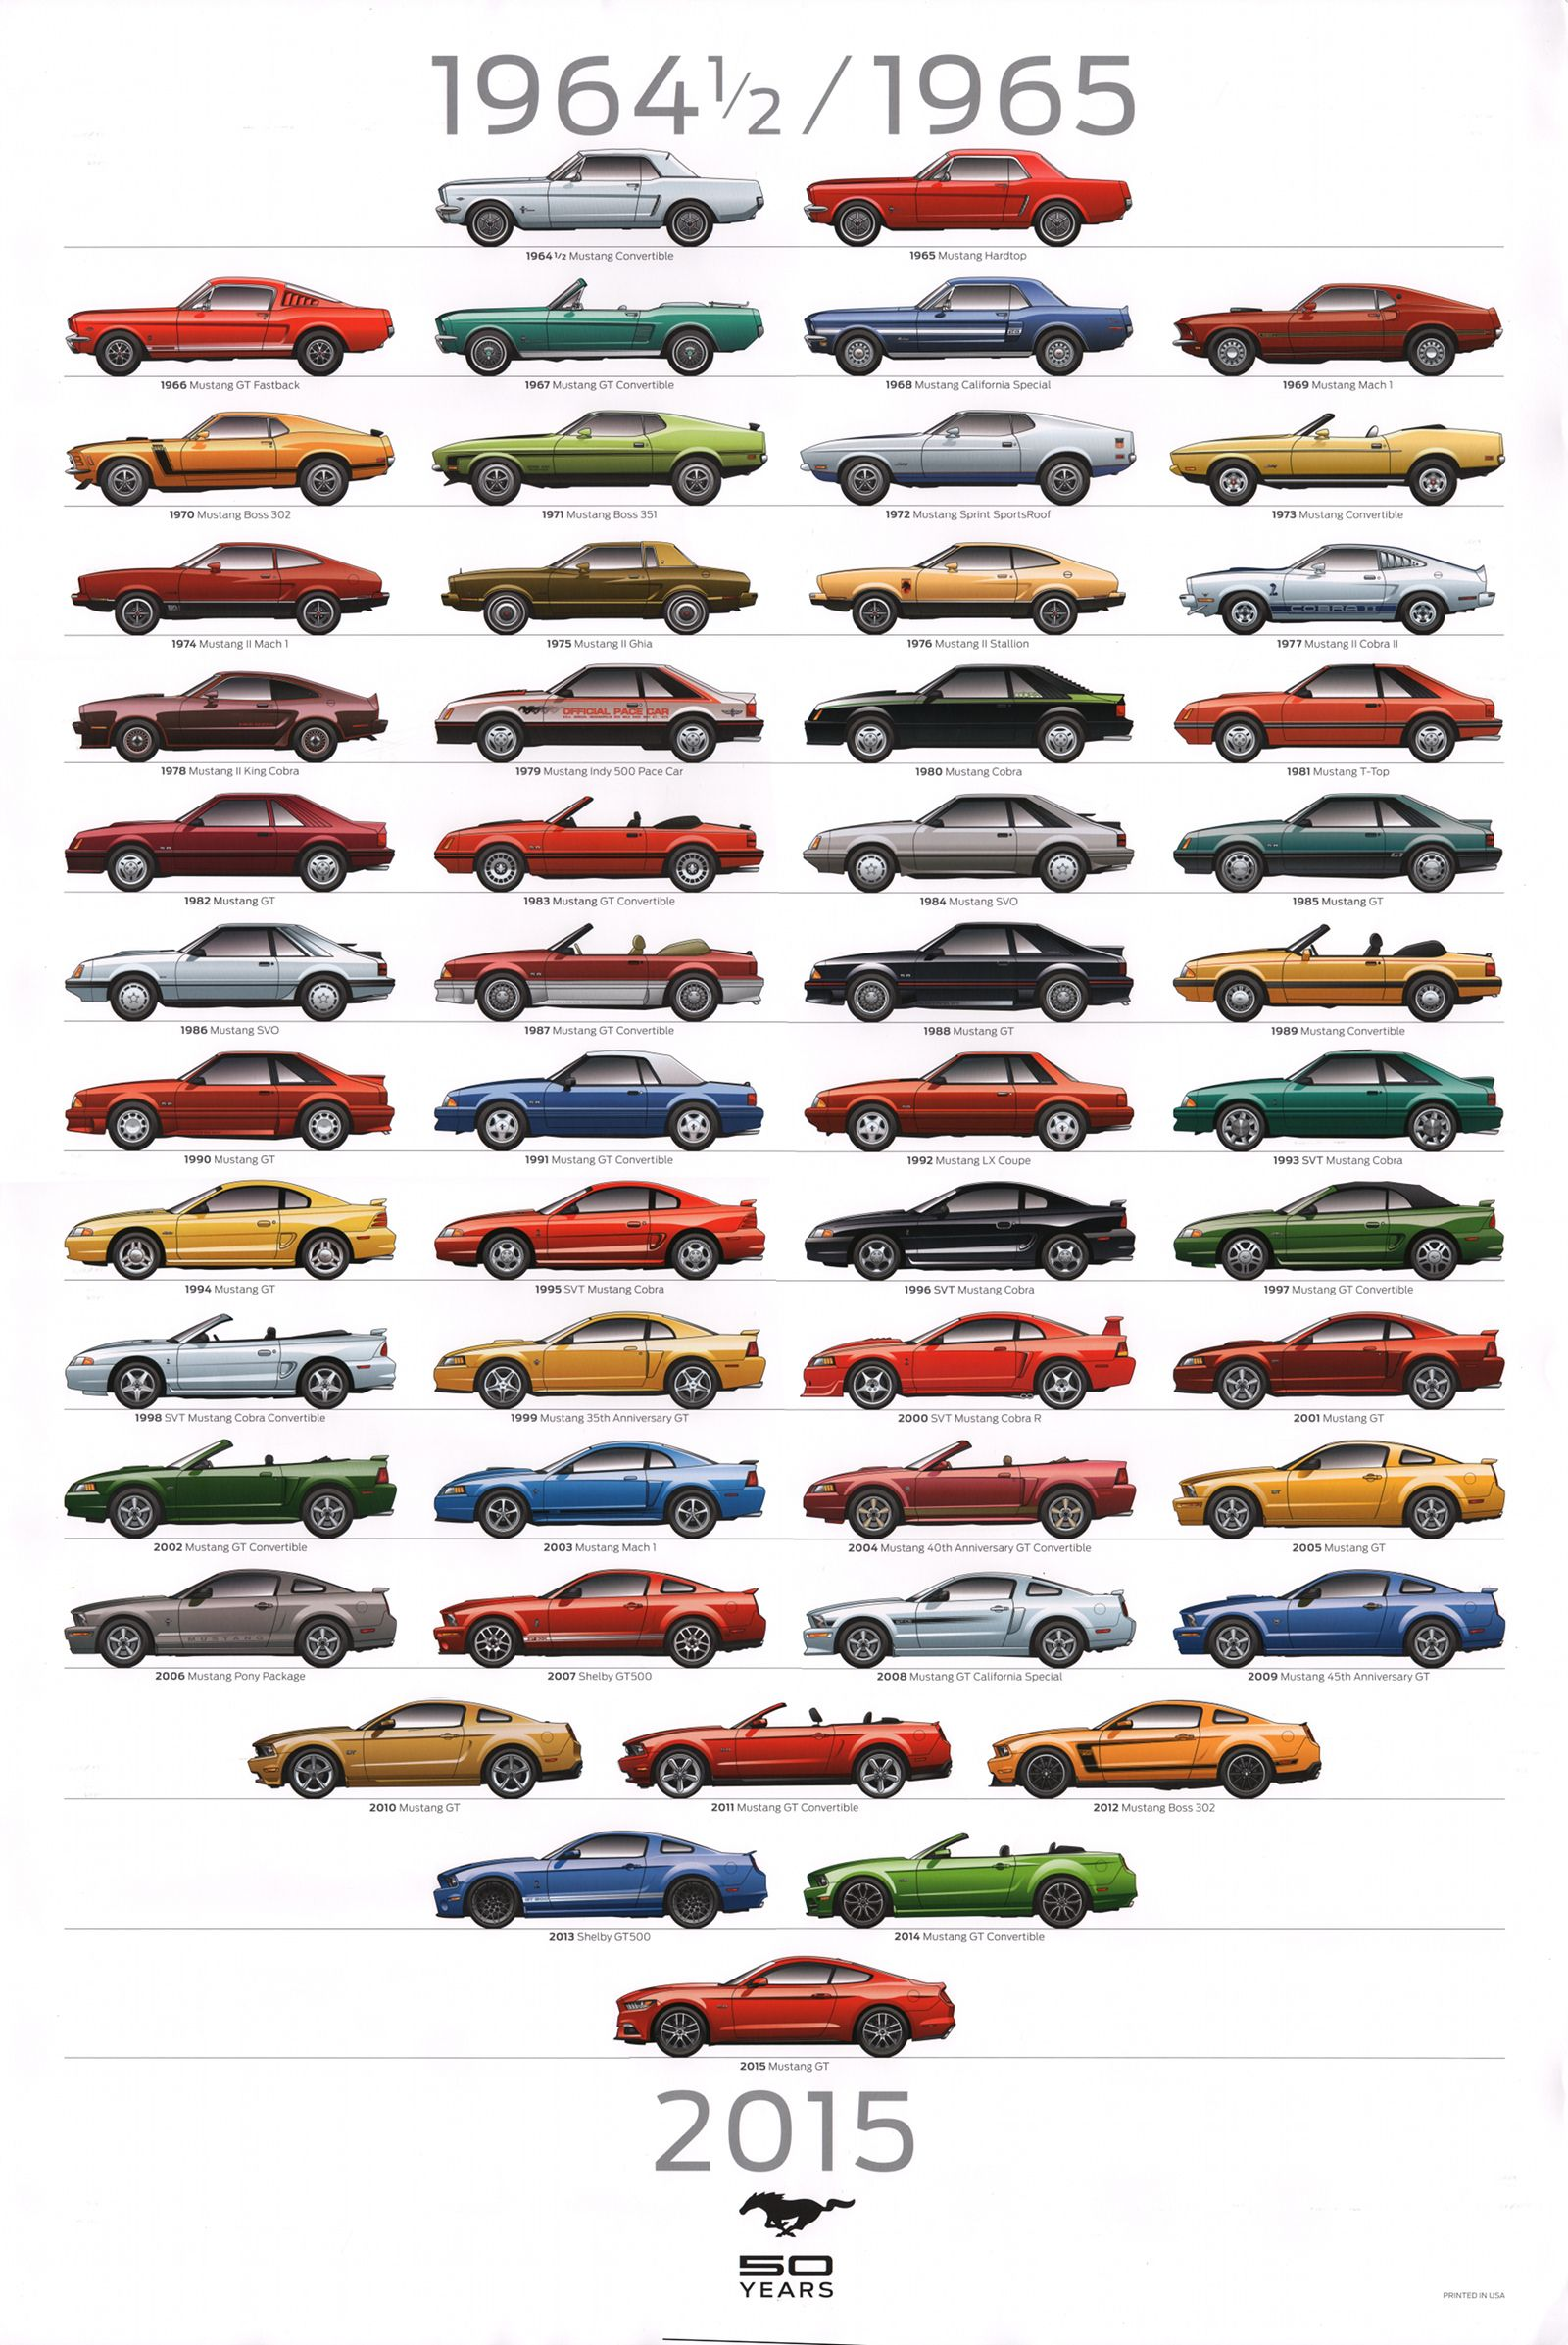 2015 Mustang 50th Anniversary Promotional Sales Brochure | Cars ...